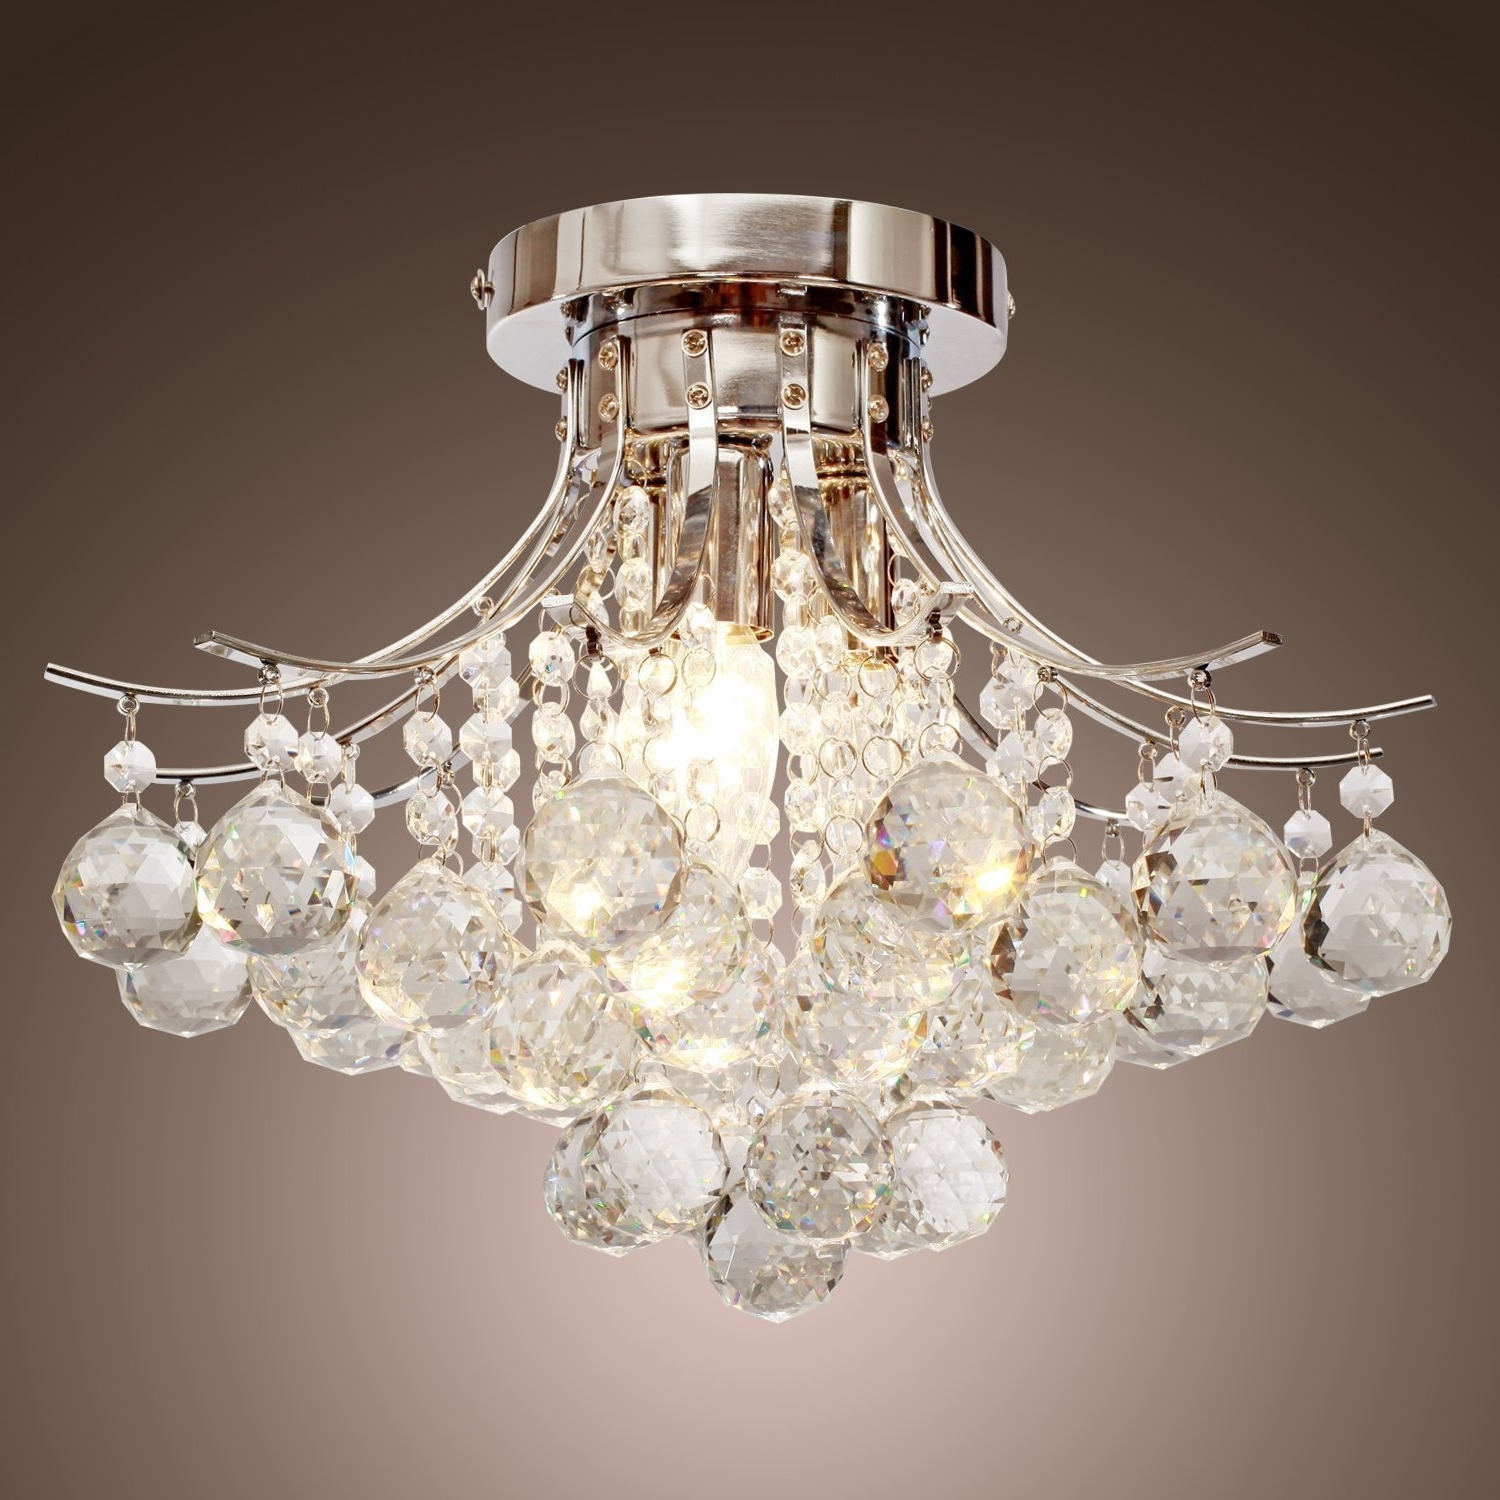 Most Popular Flush Fitting Chandeliers Intended For Locoâ Chrome Finish Crystal Chandelier With 3 Lights, Mini Style (View 10 of 15)